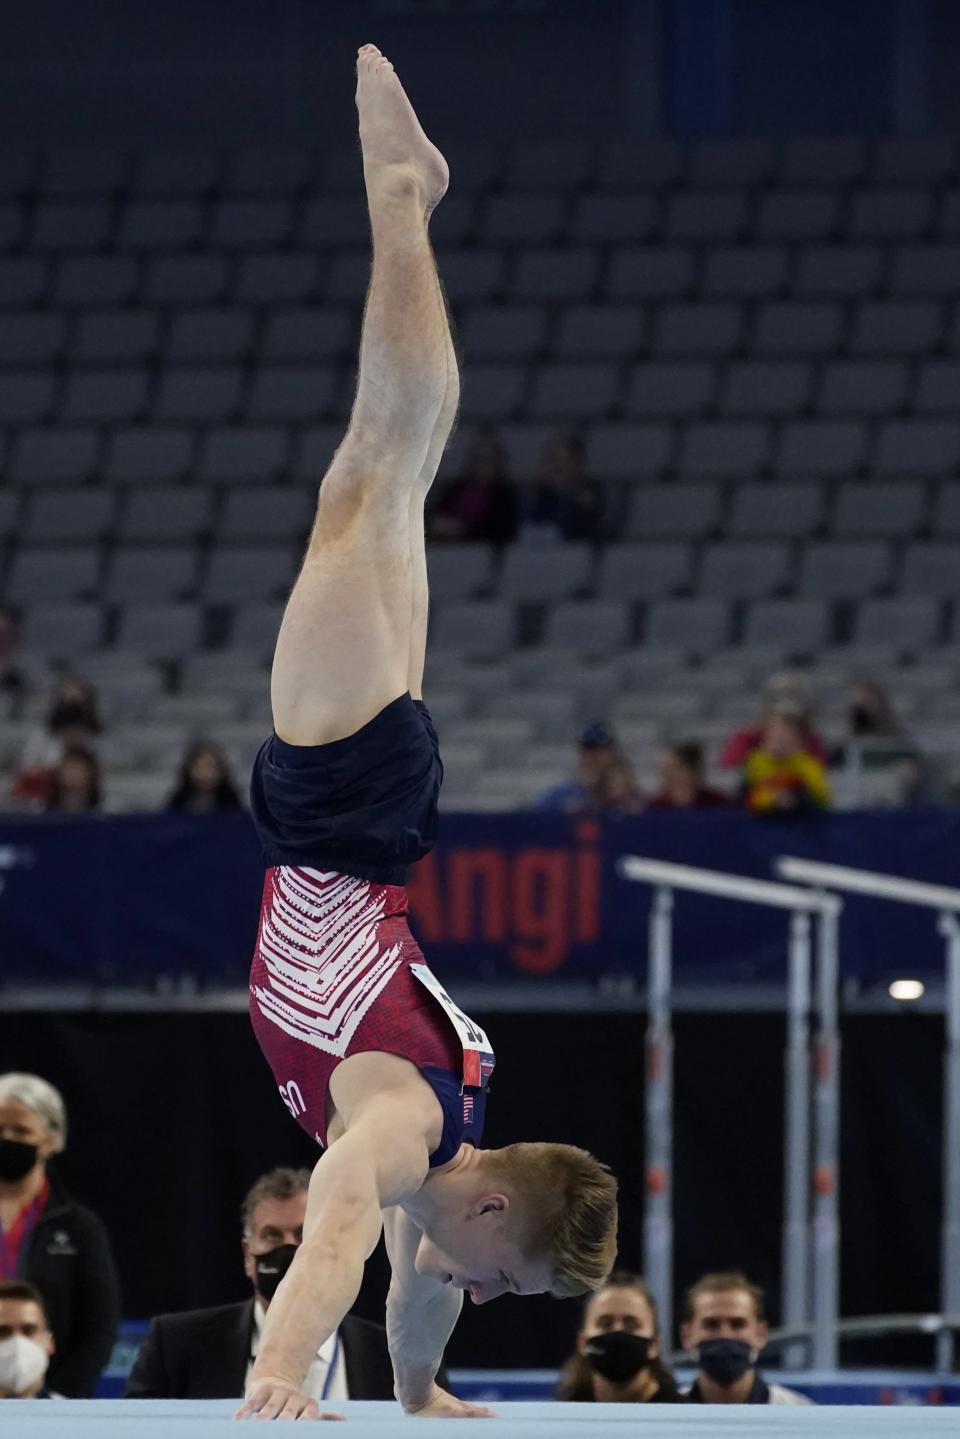 Shane Wiskus competes in the floor exercise during the U.S. Gymnastics Championships, Saturday, June 5, 2021, in Fort Worth, Texas. (AP Photo/Tony Gutierrez)